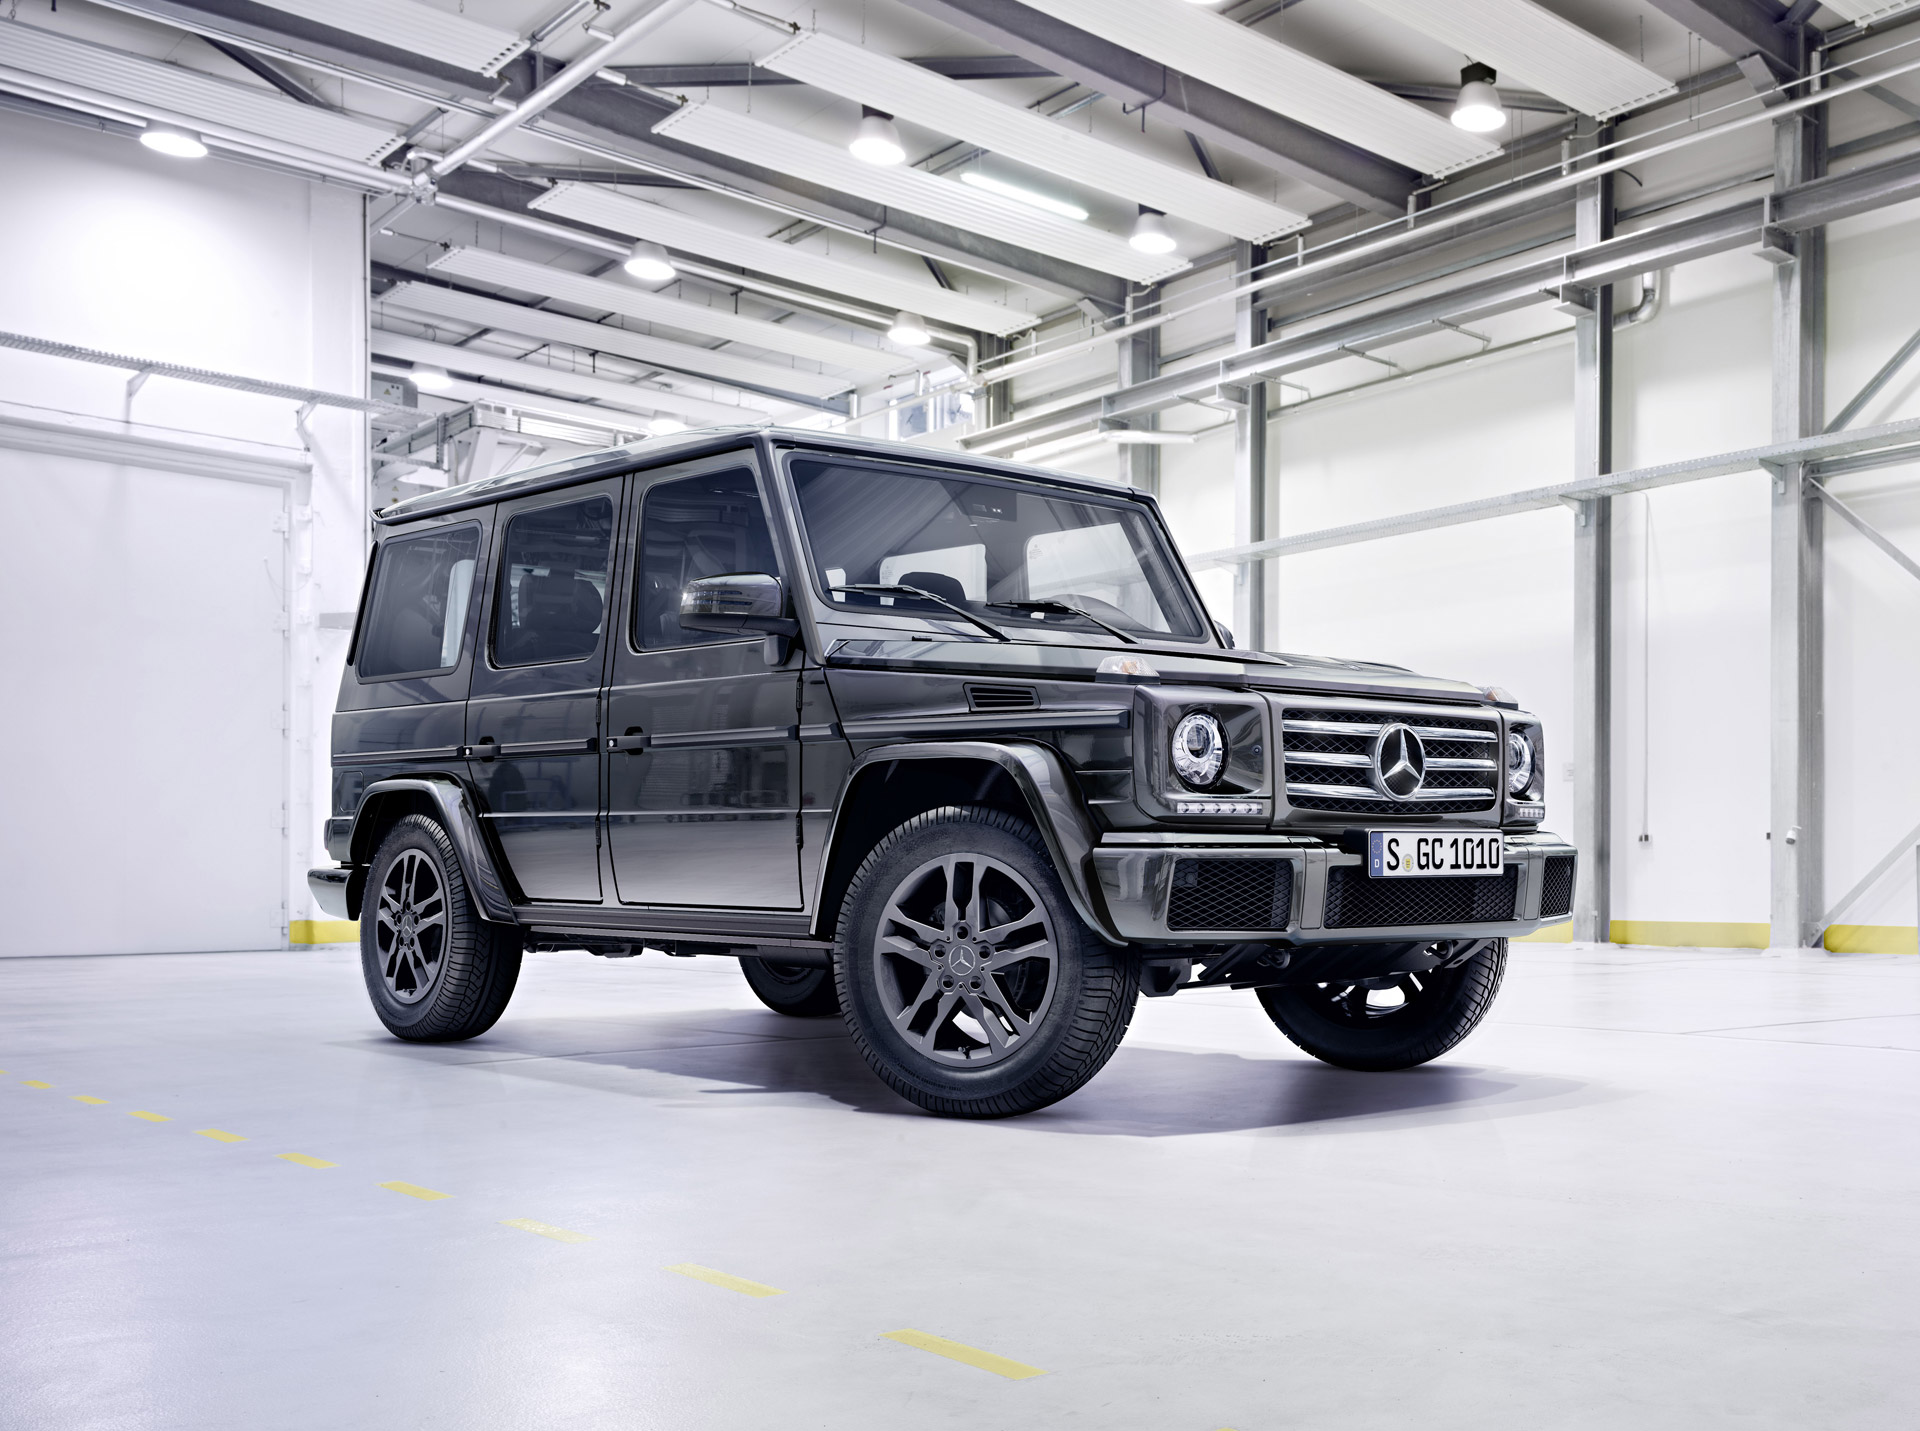 2016 mercedes benz g class pricing starts at 120 825 for 2016 mercedes benz g class